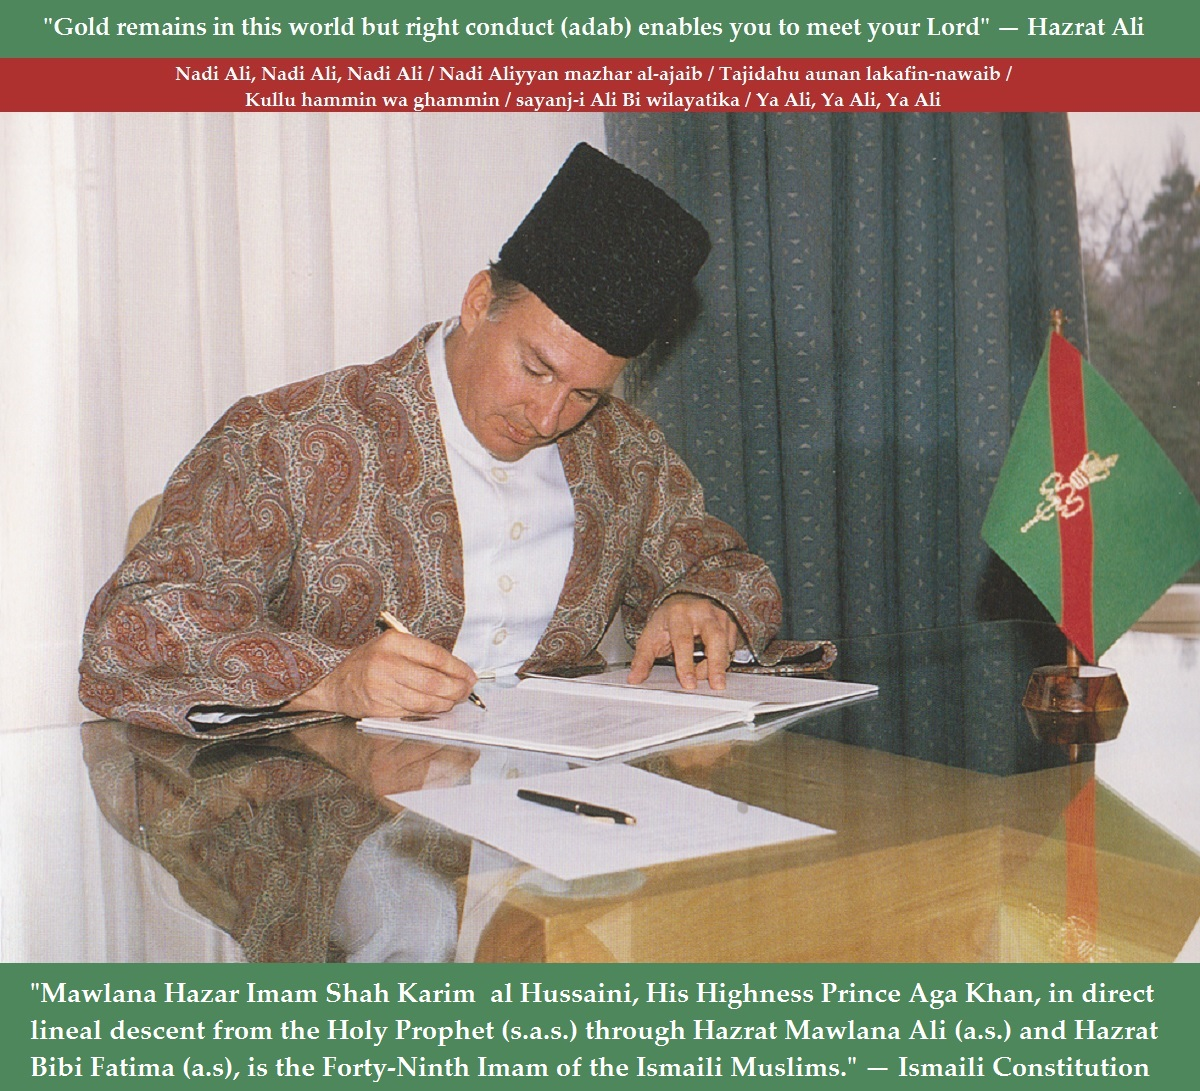 Selected sayings of Hazrat Ali, and His Highness the Aga Khan on his ancestor